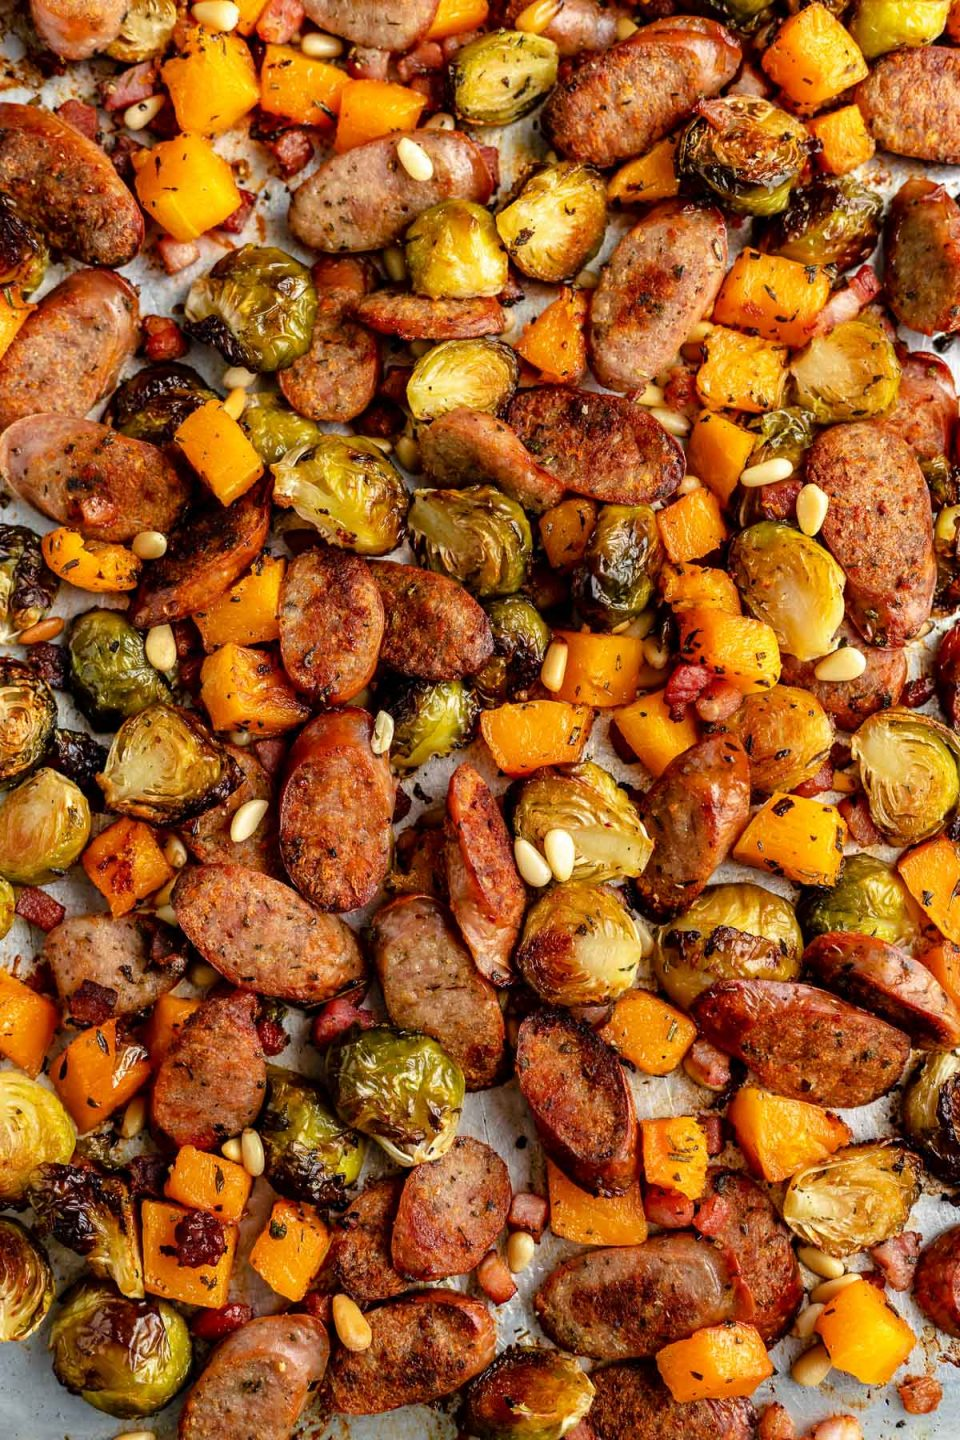 Sheet pan chicken sausage & veggies after roasting - the sliced chicken sausage, diced butternut squash, & halved brussels are deeply browned & roasty. The sheet pan is topped with a sprinkling of pine nuts.